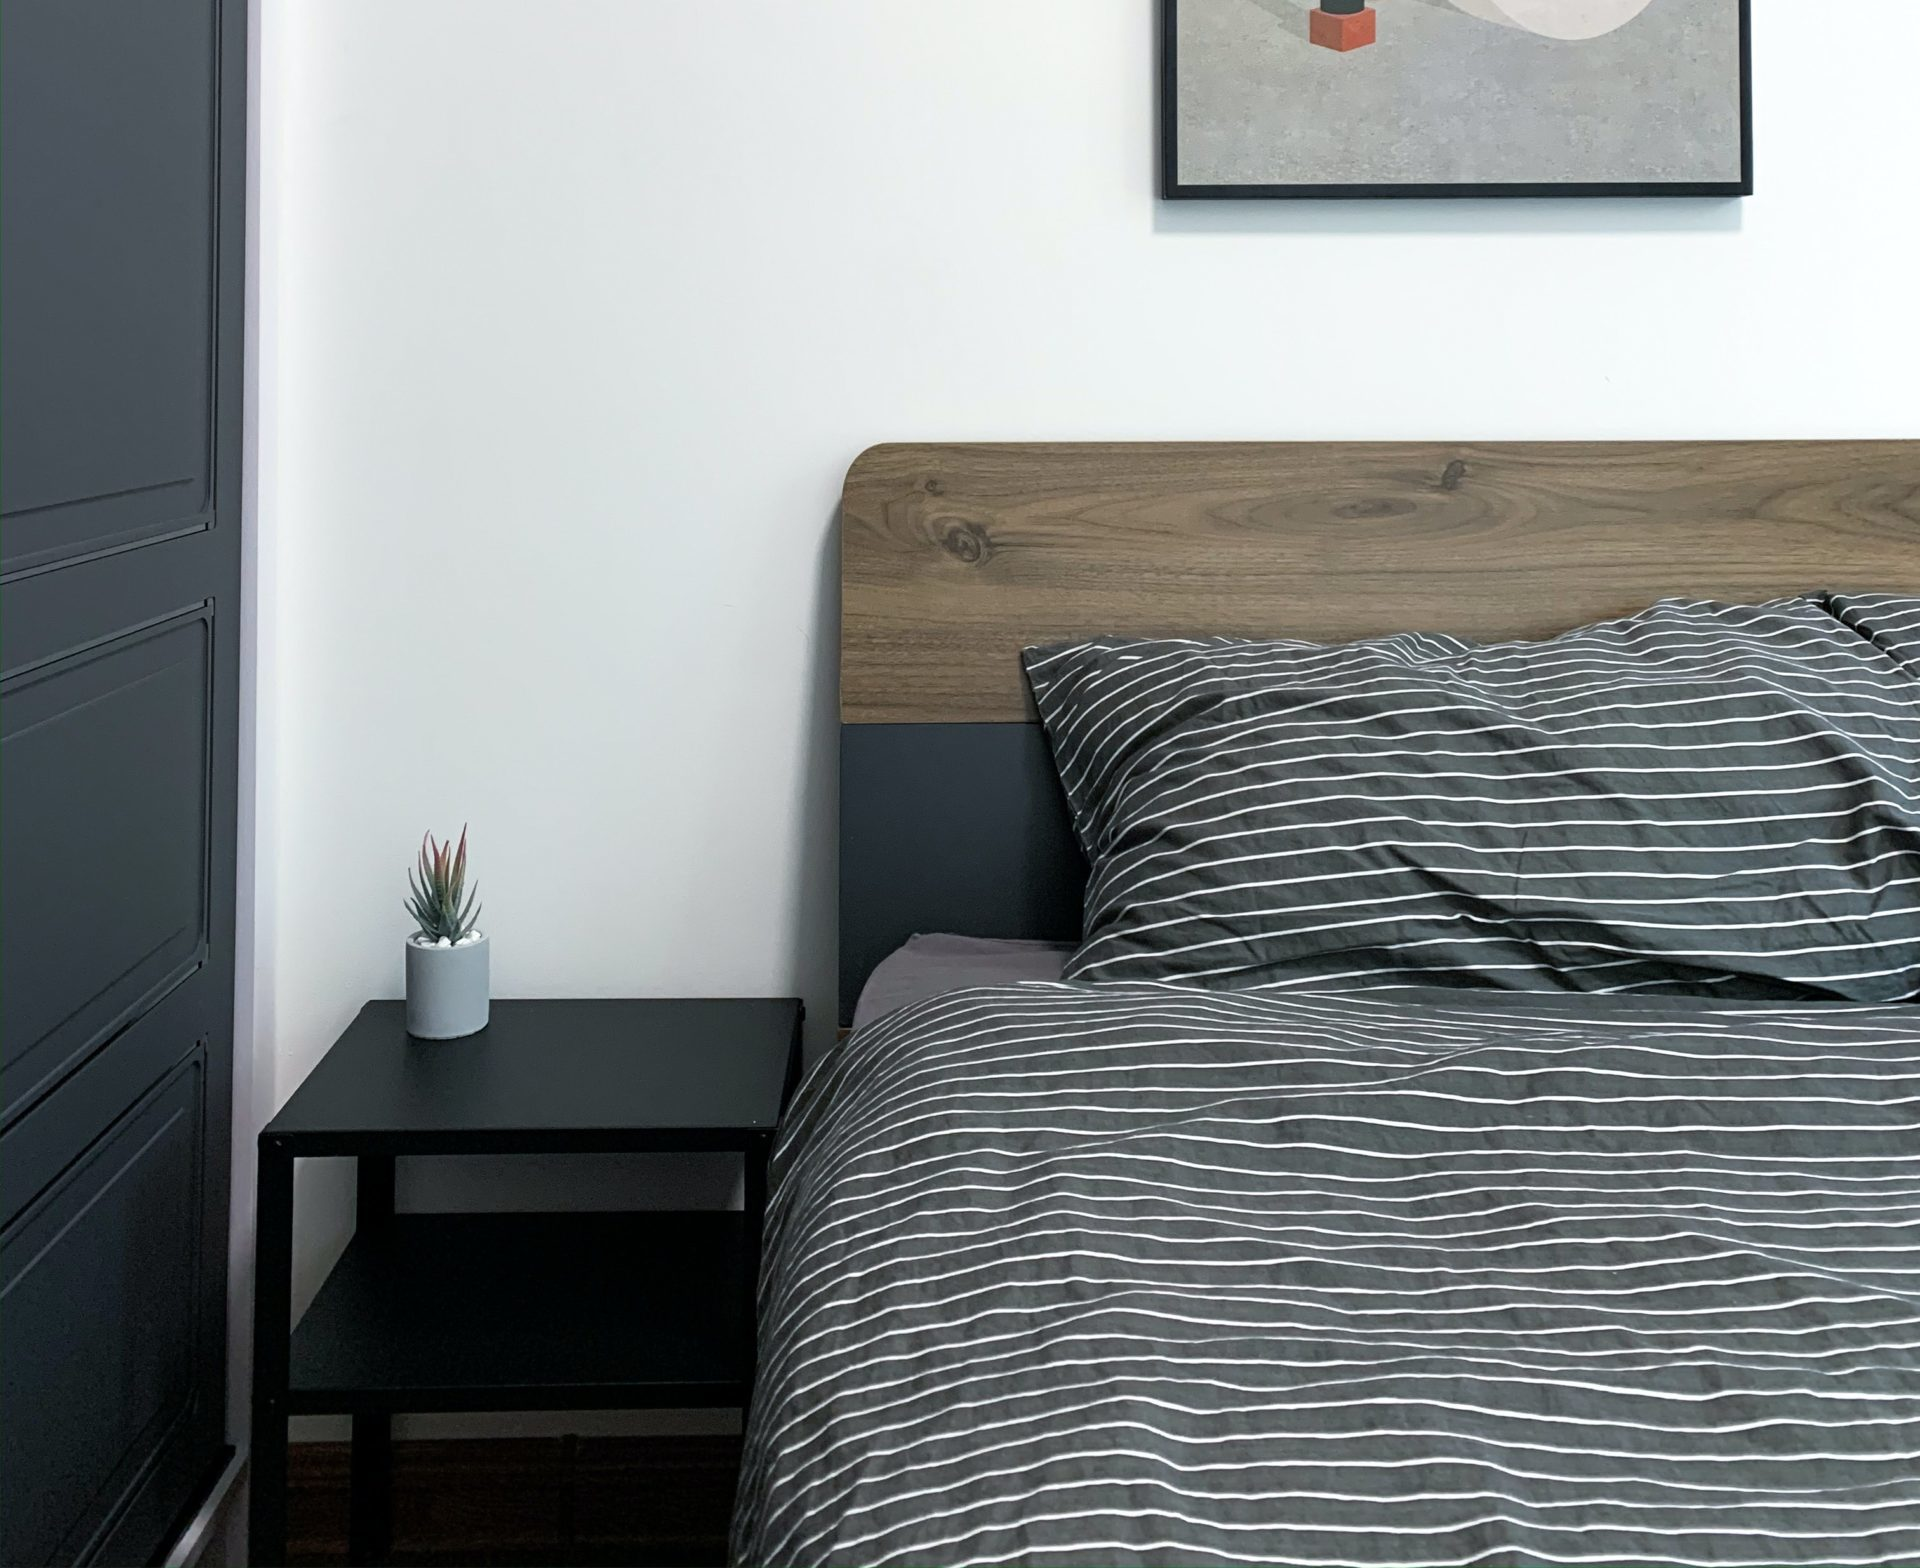 IMPORTANT FENG SHUI BED PLACEMENTS YOU SHOULD KNOW